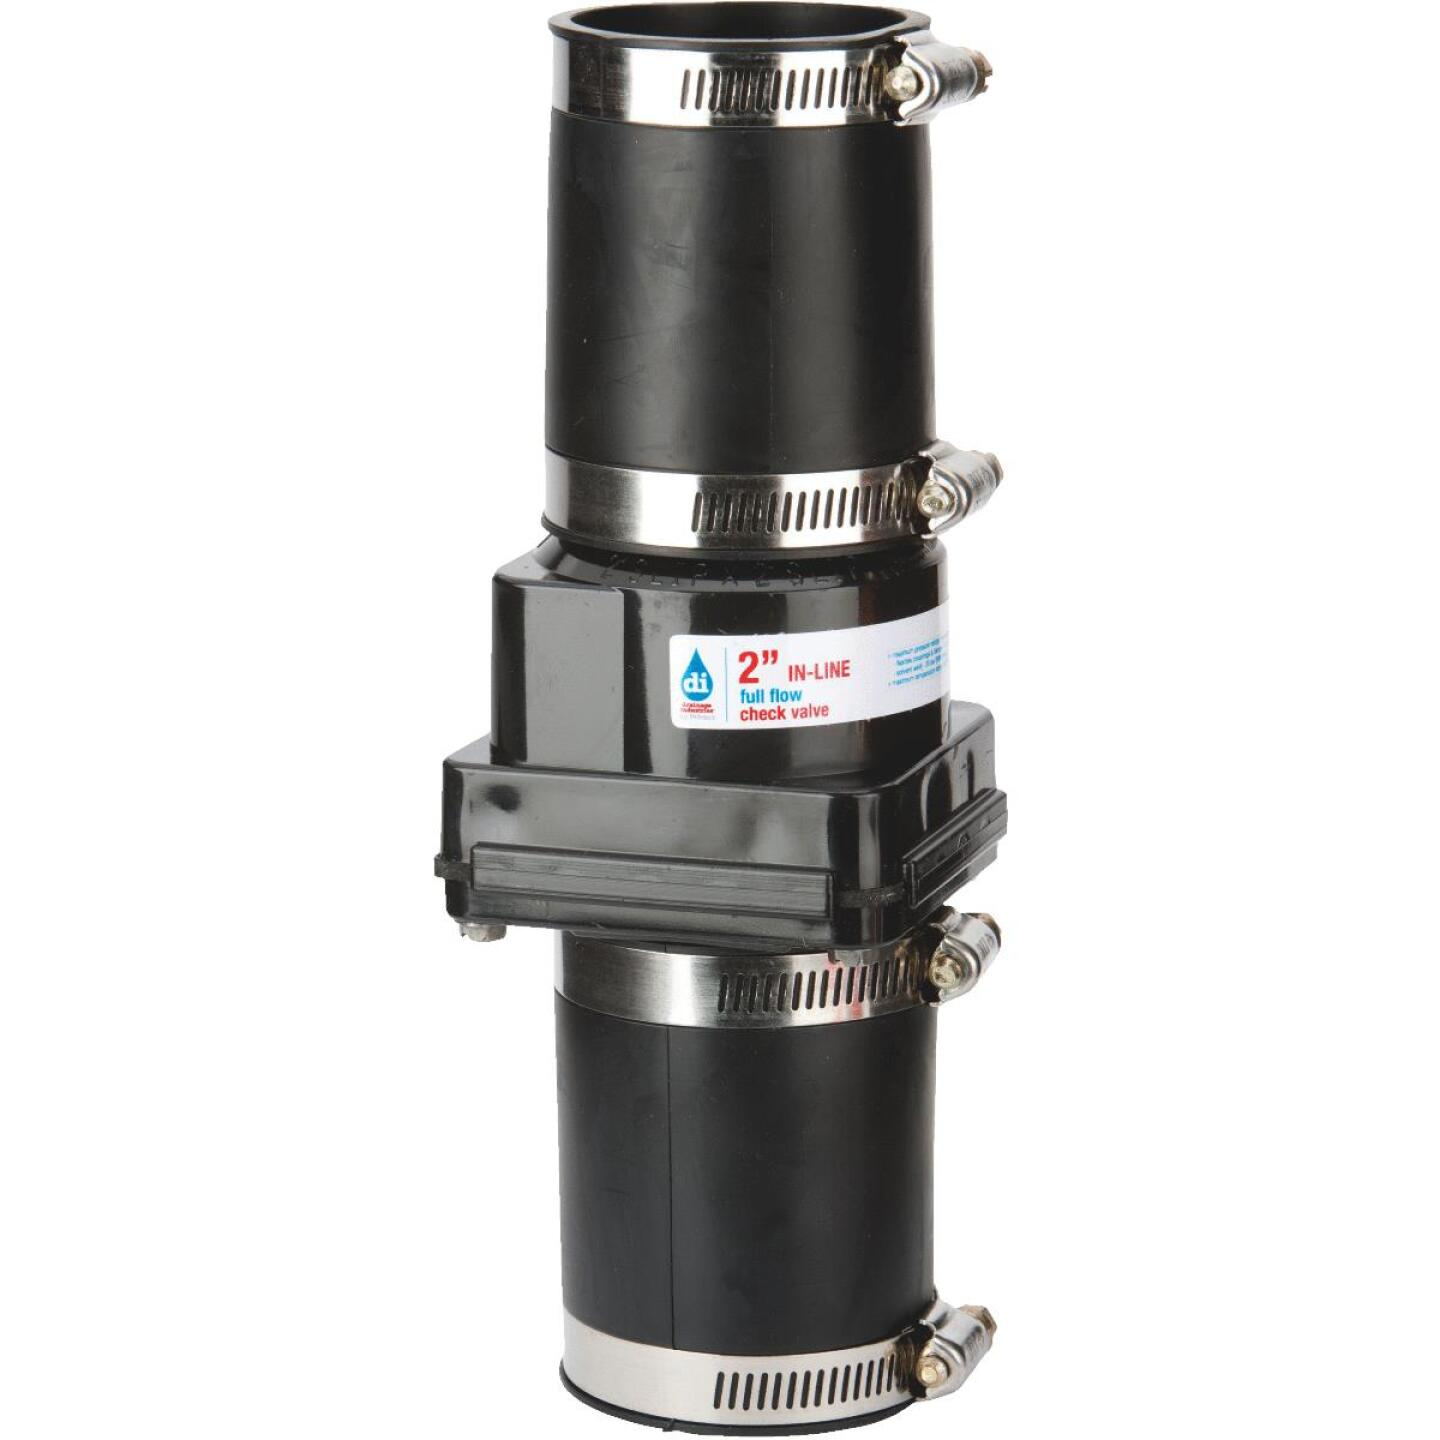 Drainage Industries 2 In. ABS Thermoplastic In-Line Sump Pump Check Valve Image 1